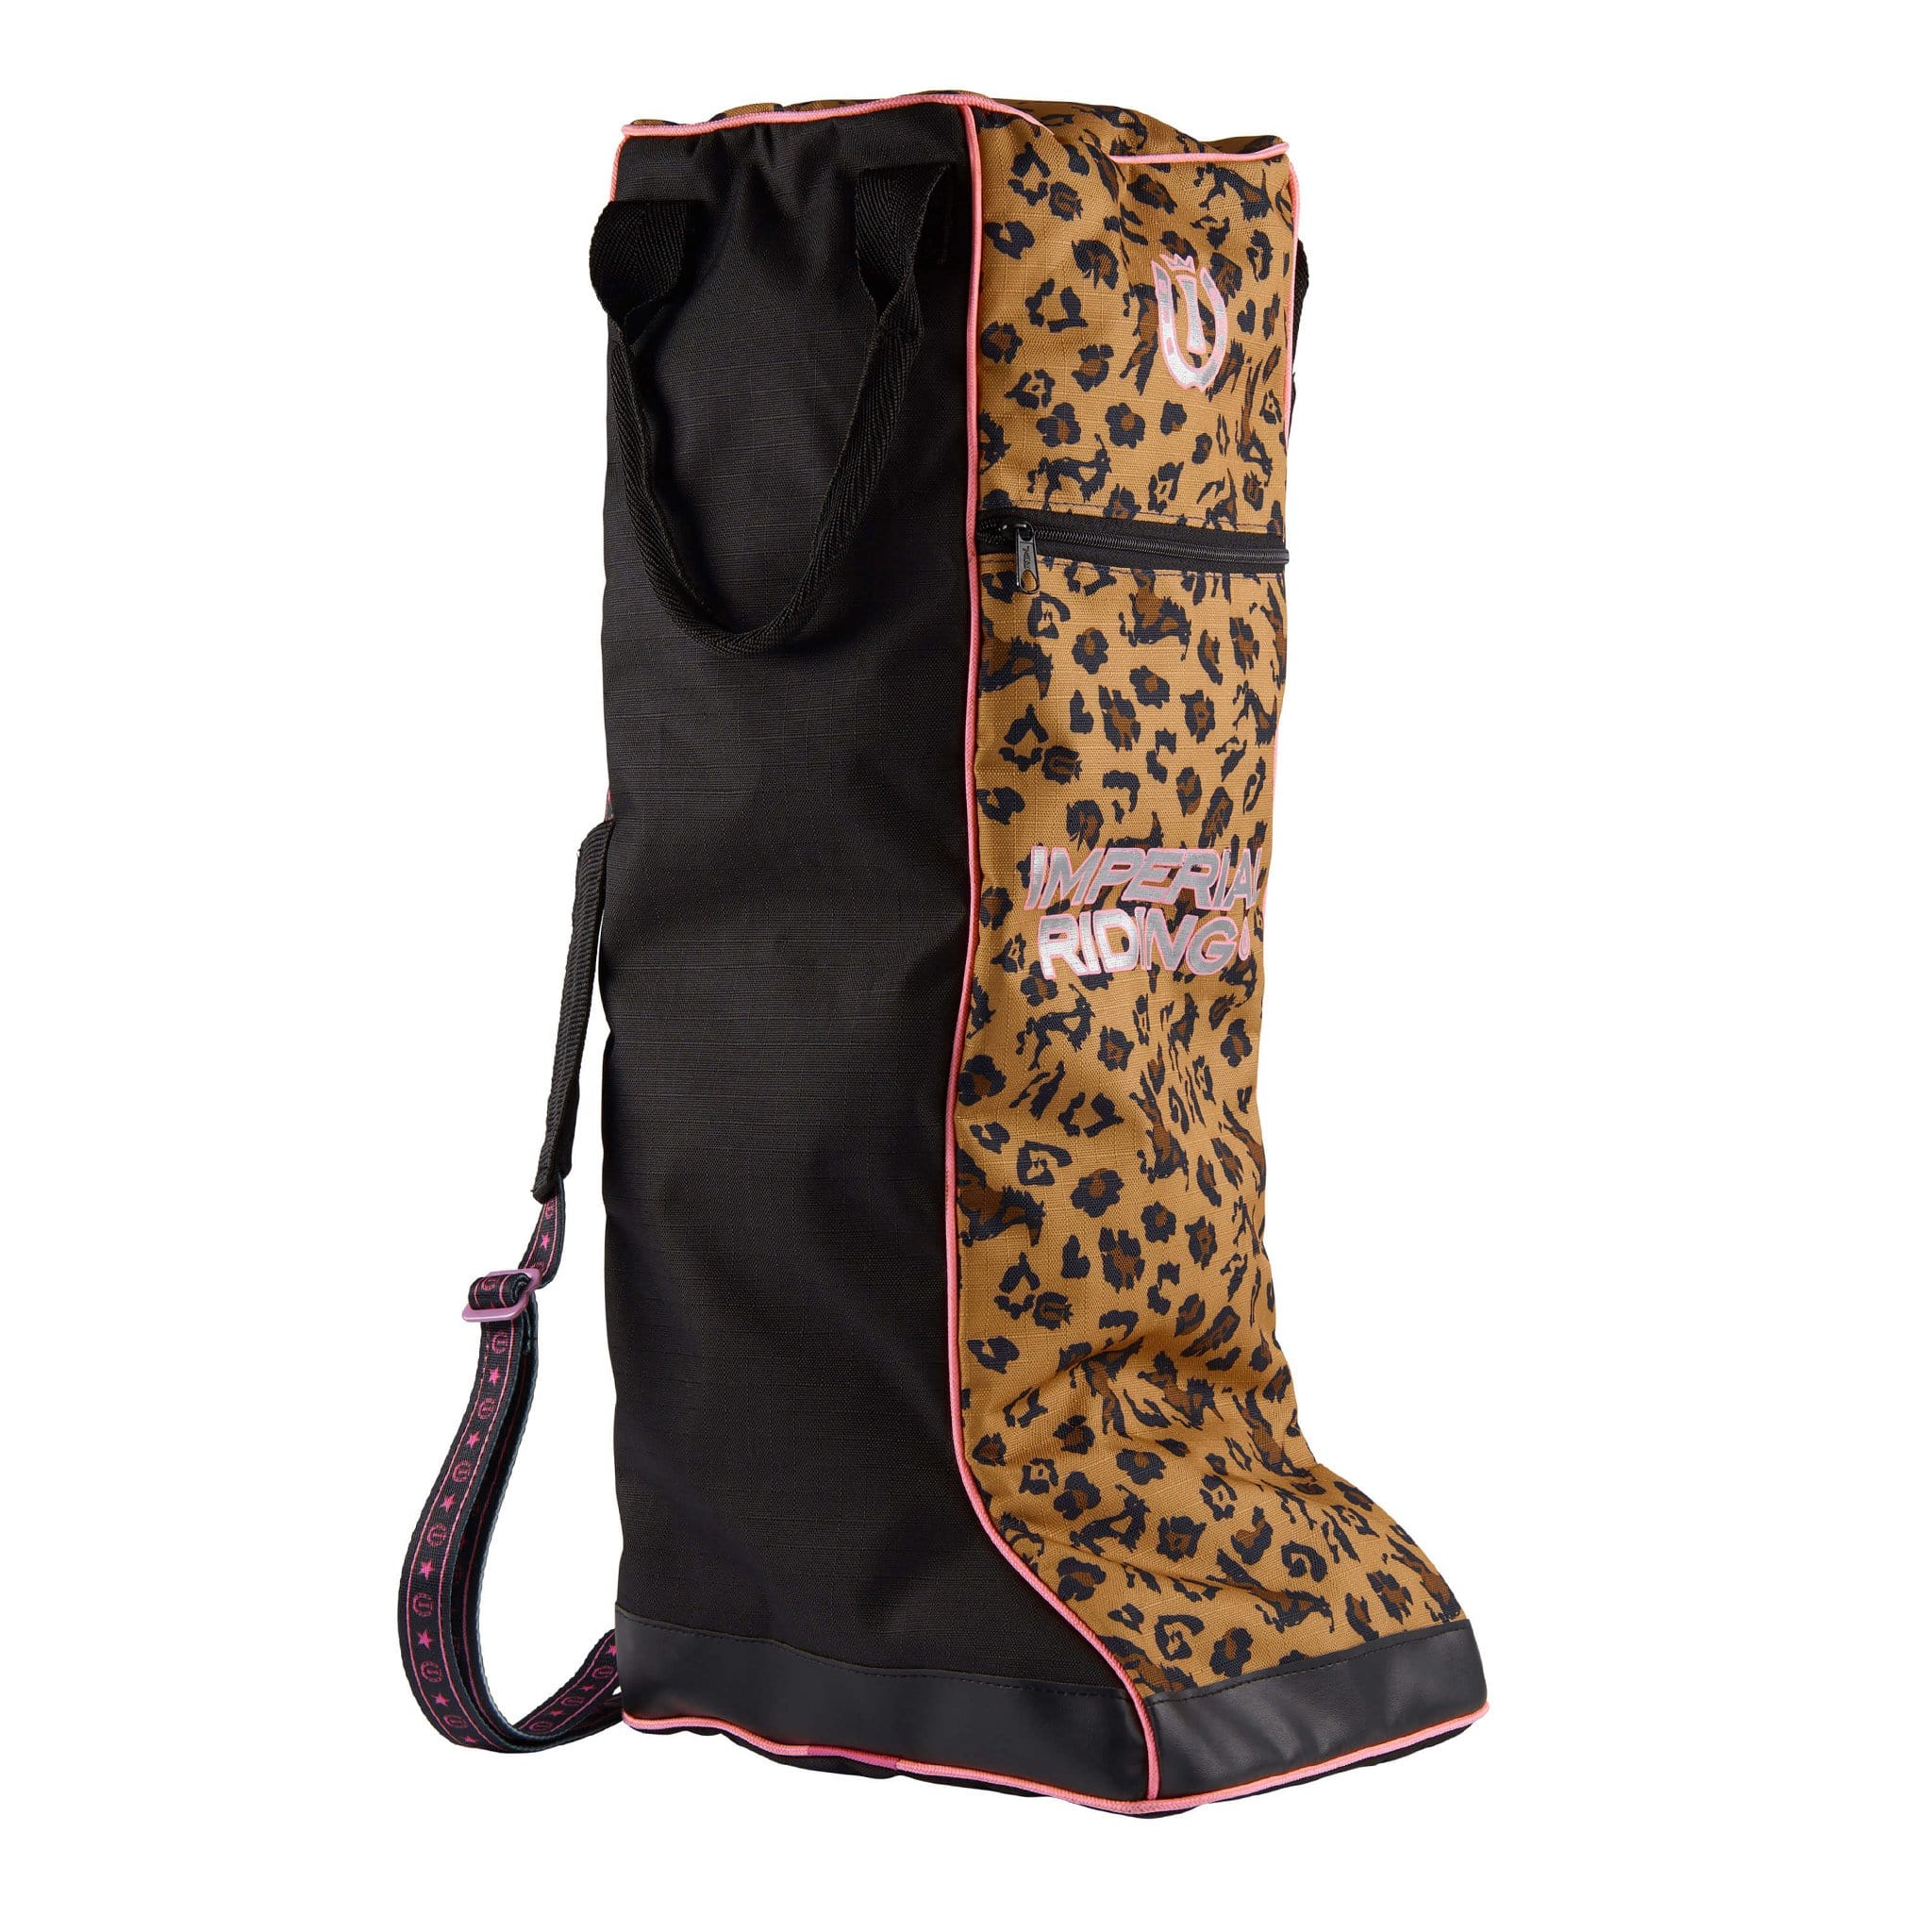 Imperial Riding Beautifully Wild Boot Bag Leopard Print LA90120000